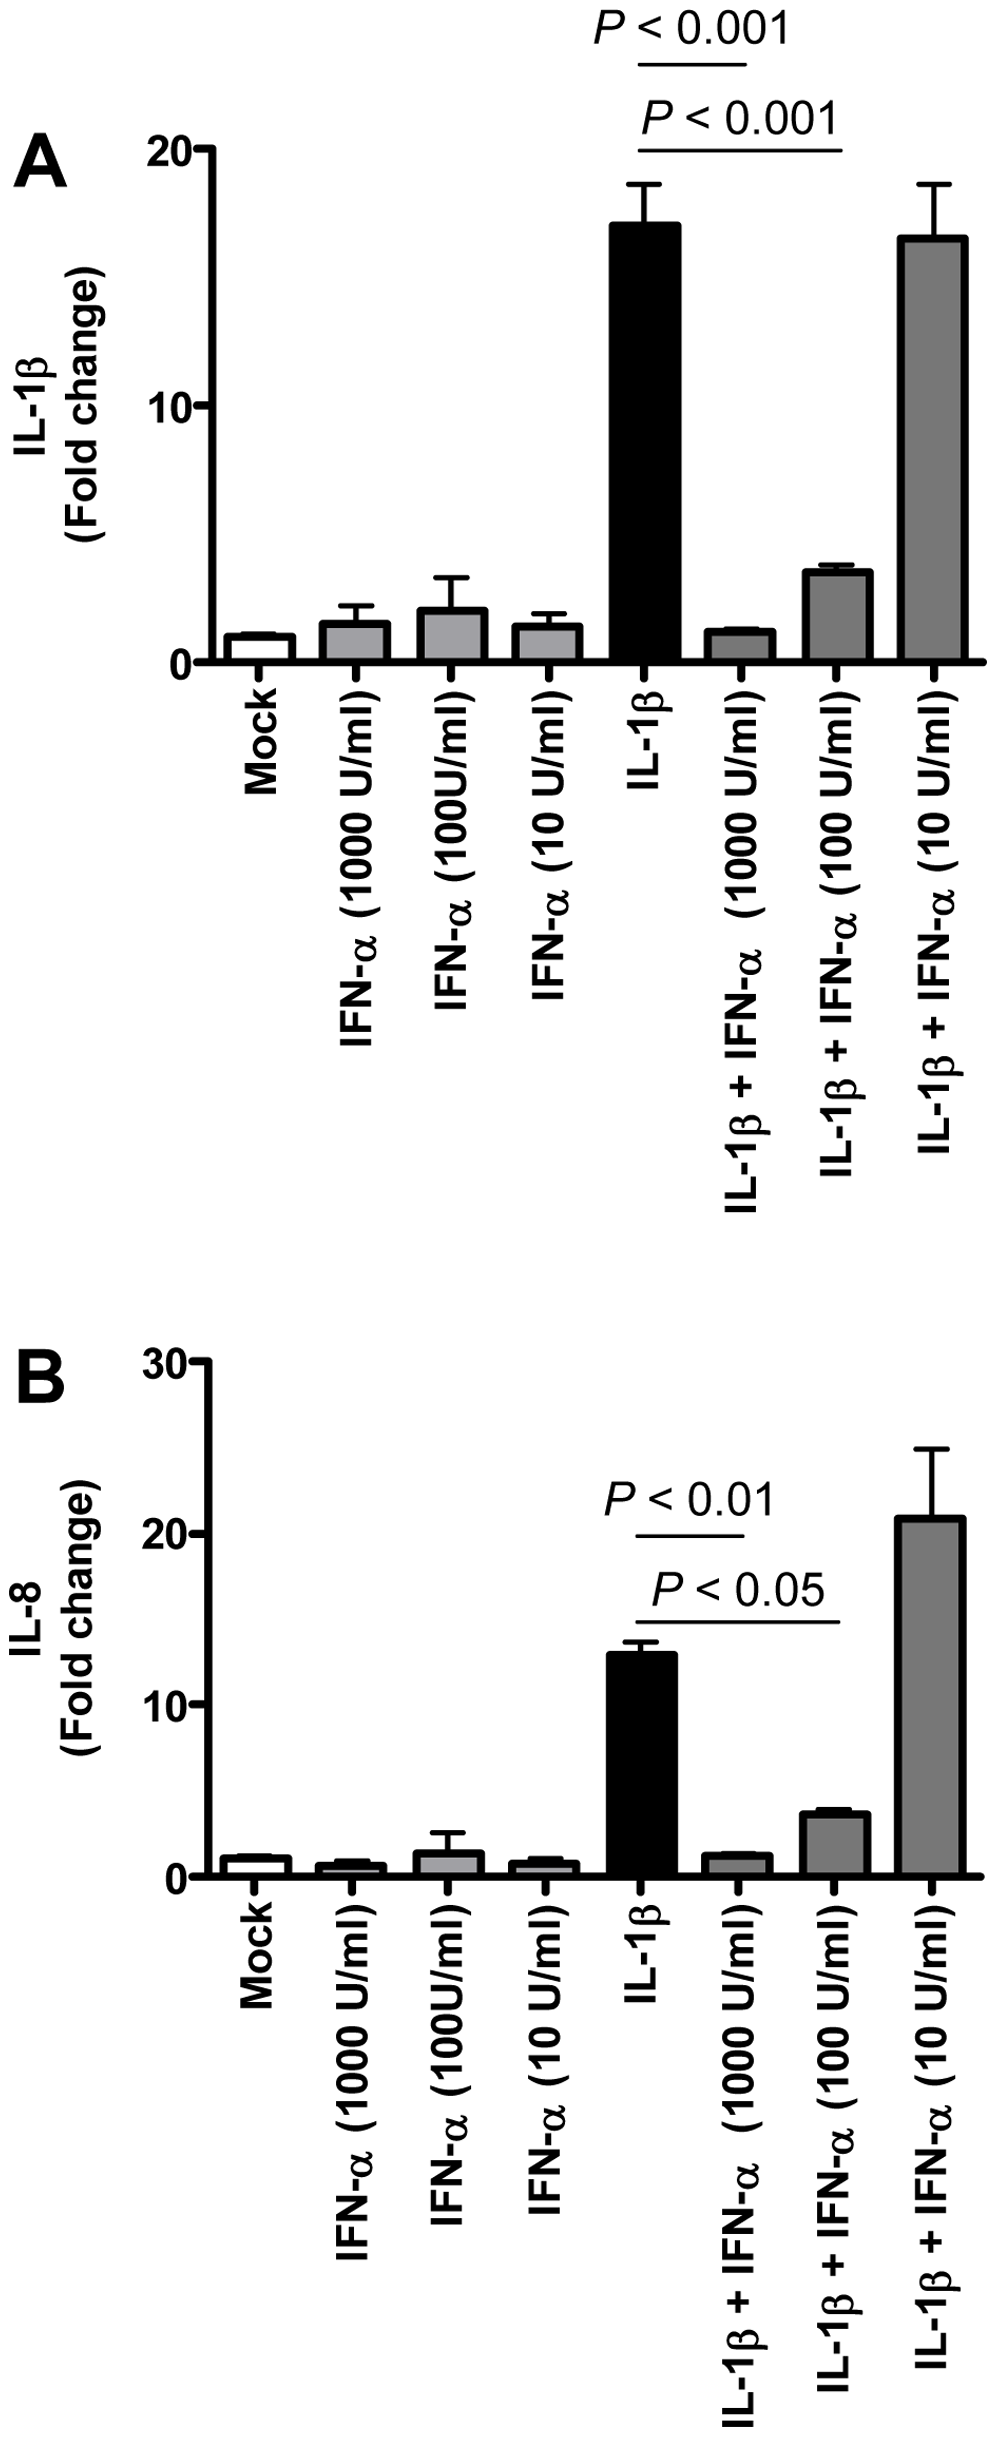 Anti-inflammatory type I IFN inhibits IL-1β-induced pro-inflammatory cytokine production in PBMCs.